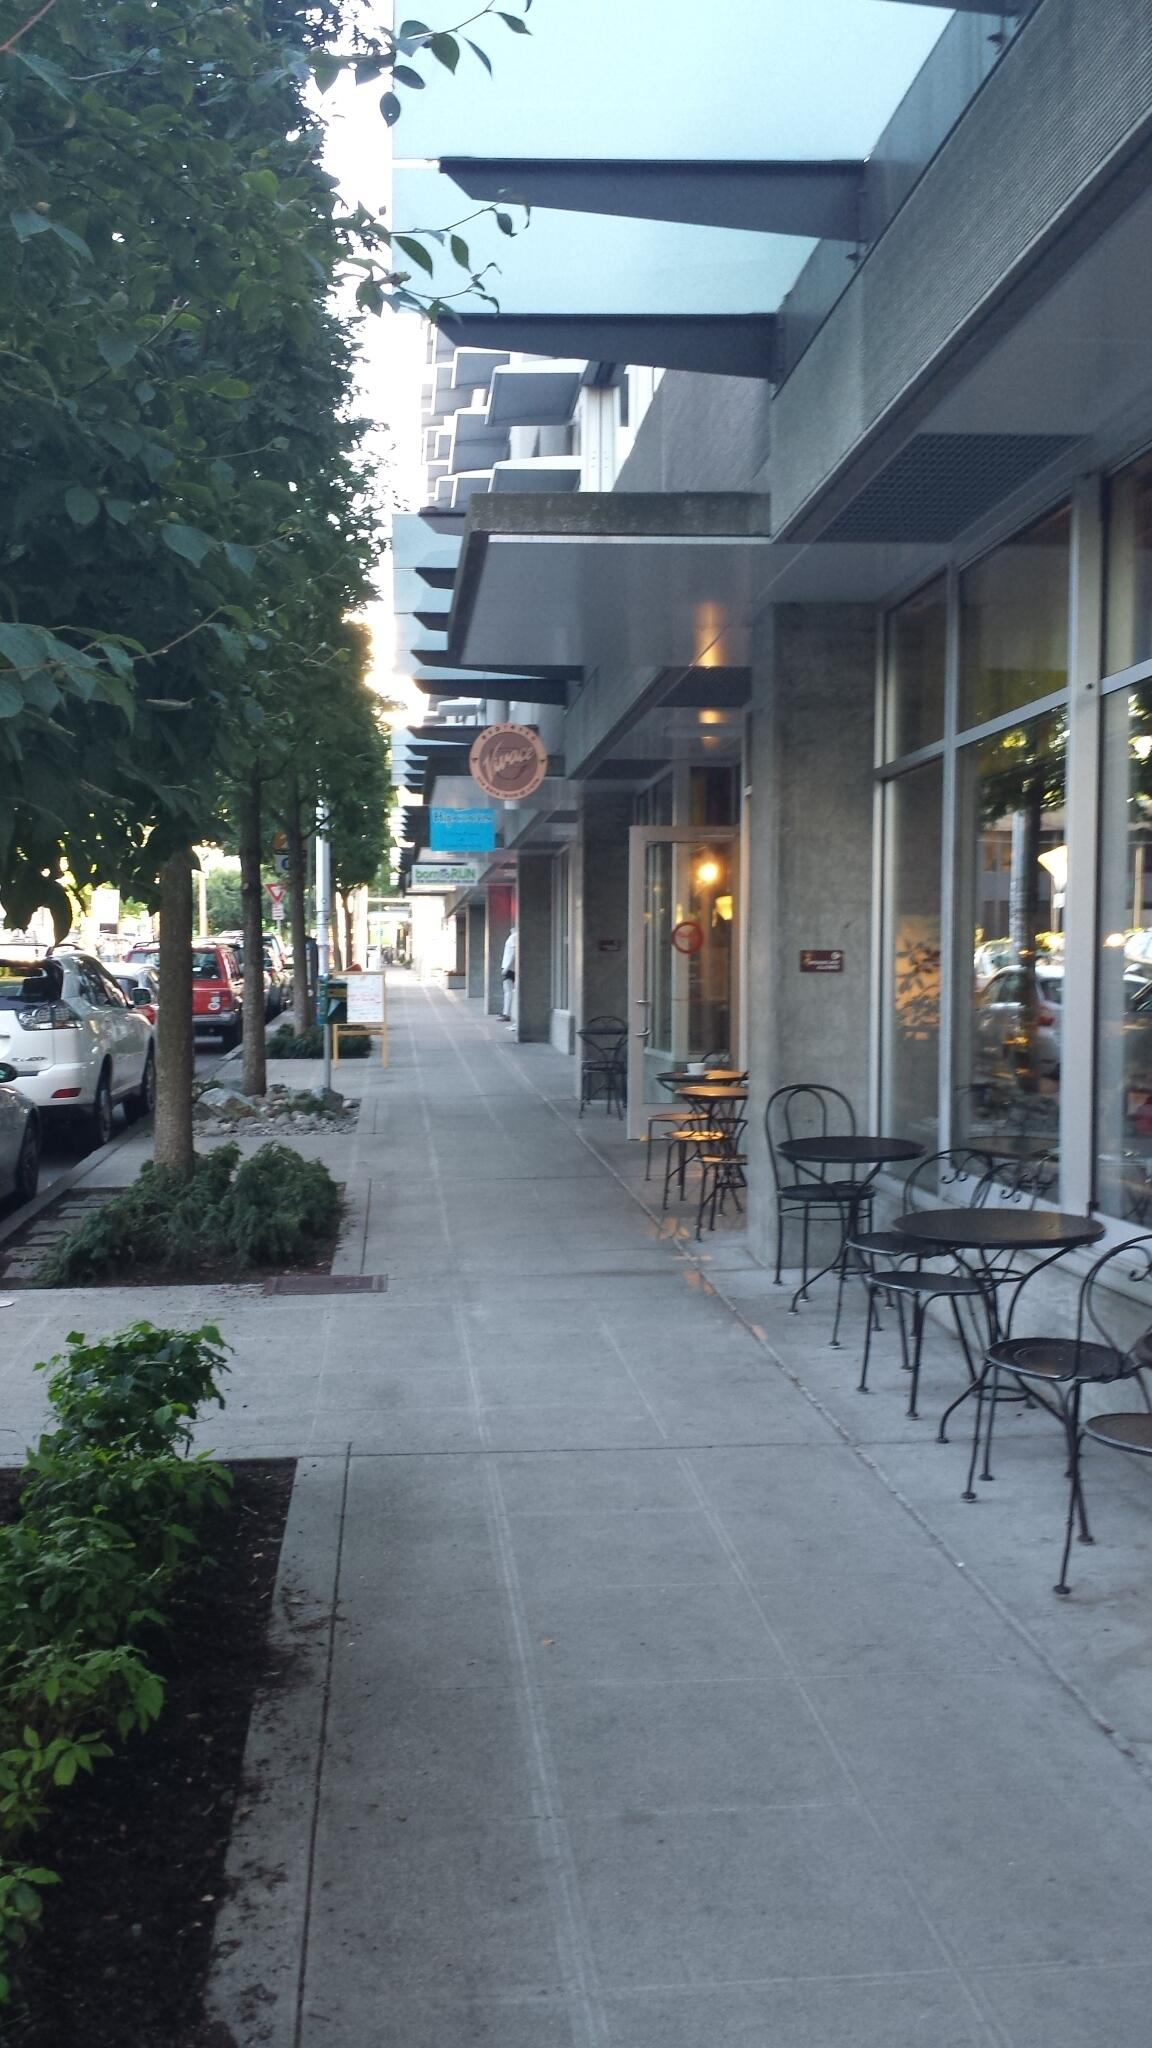 More #pedestrianfriendly streetscape around the corner from mid-block crossing @Cascade District #seattle http://t.co/jlM677oDSa